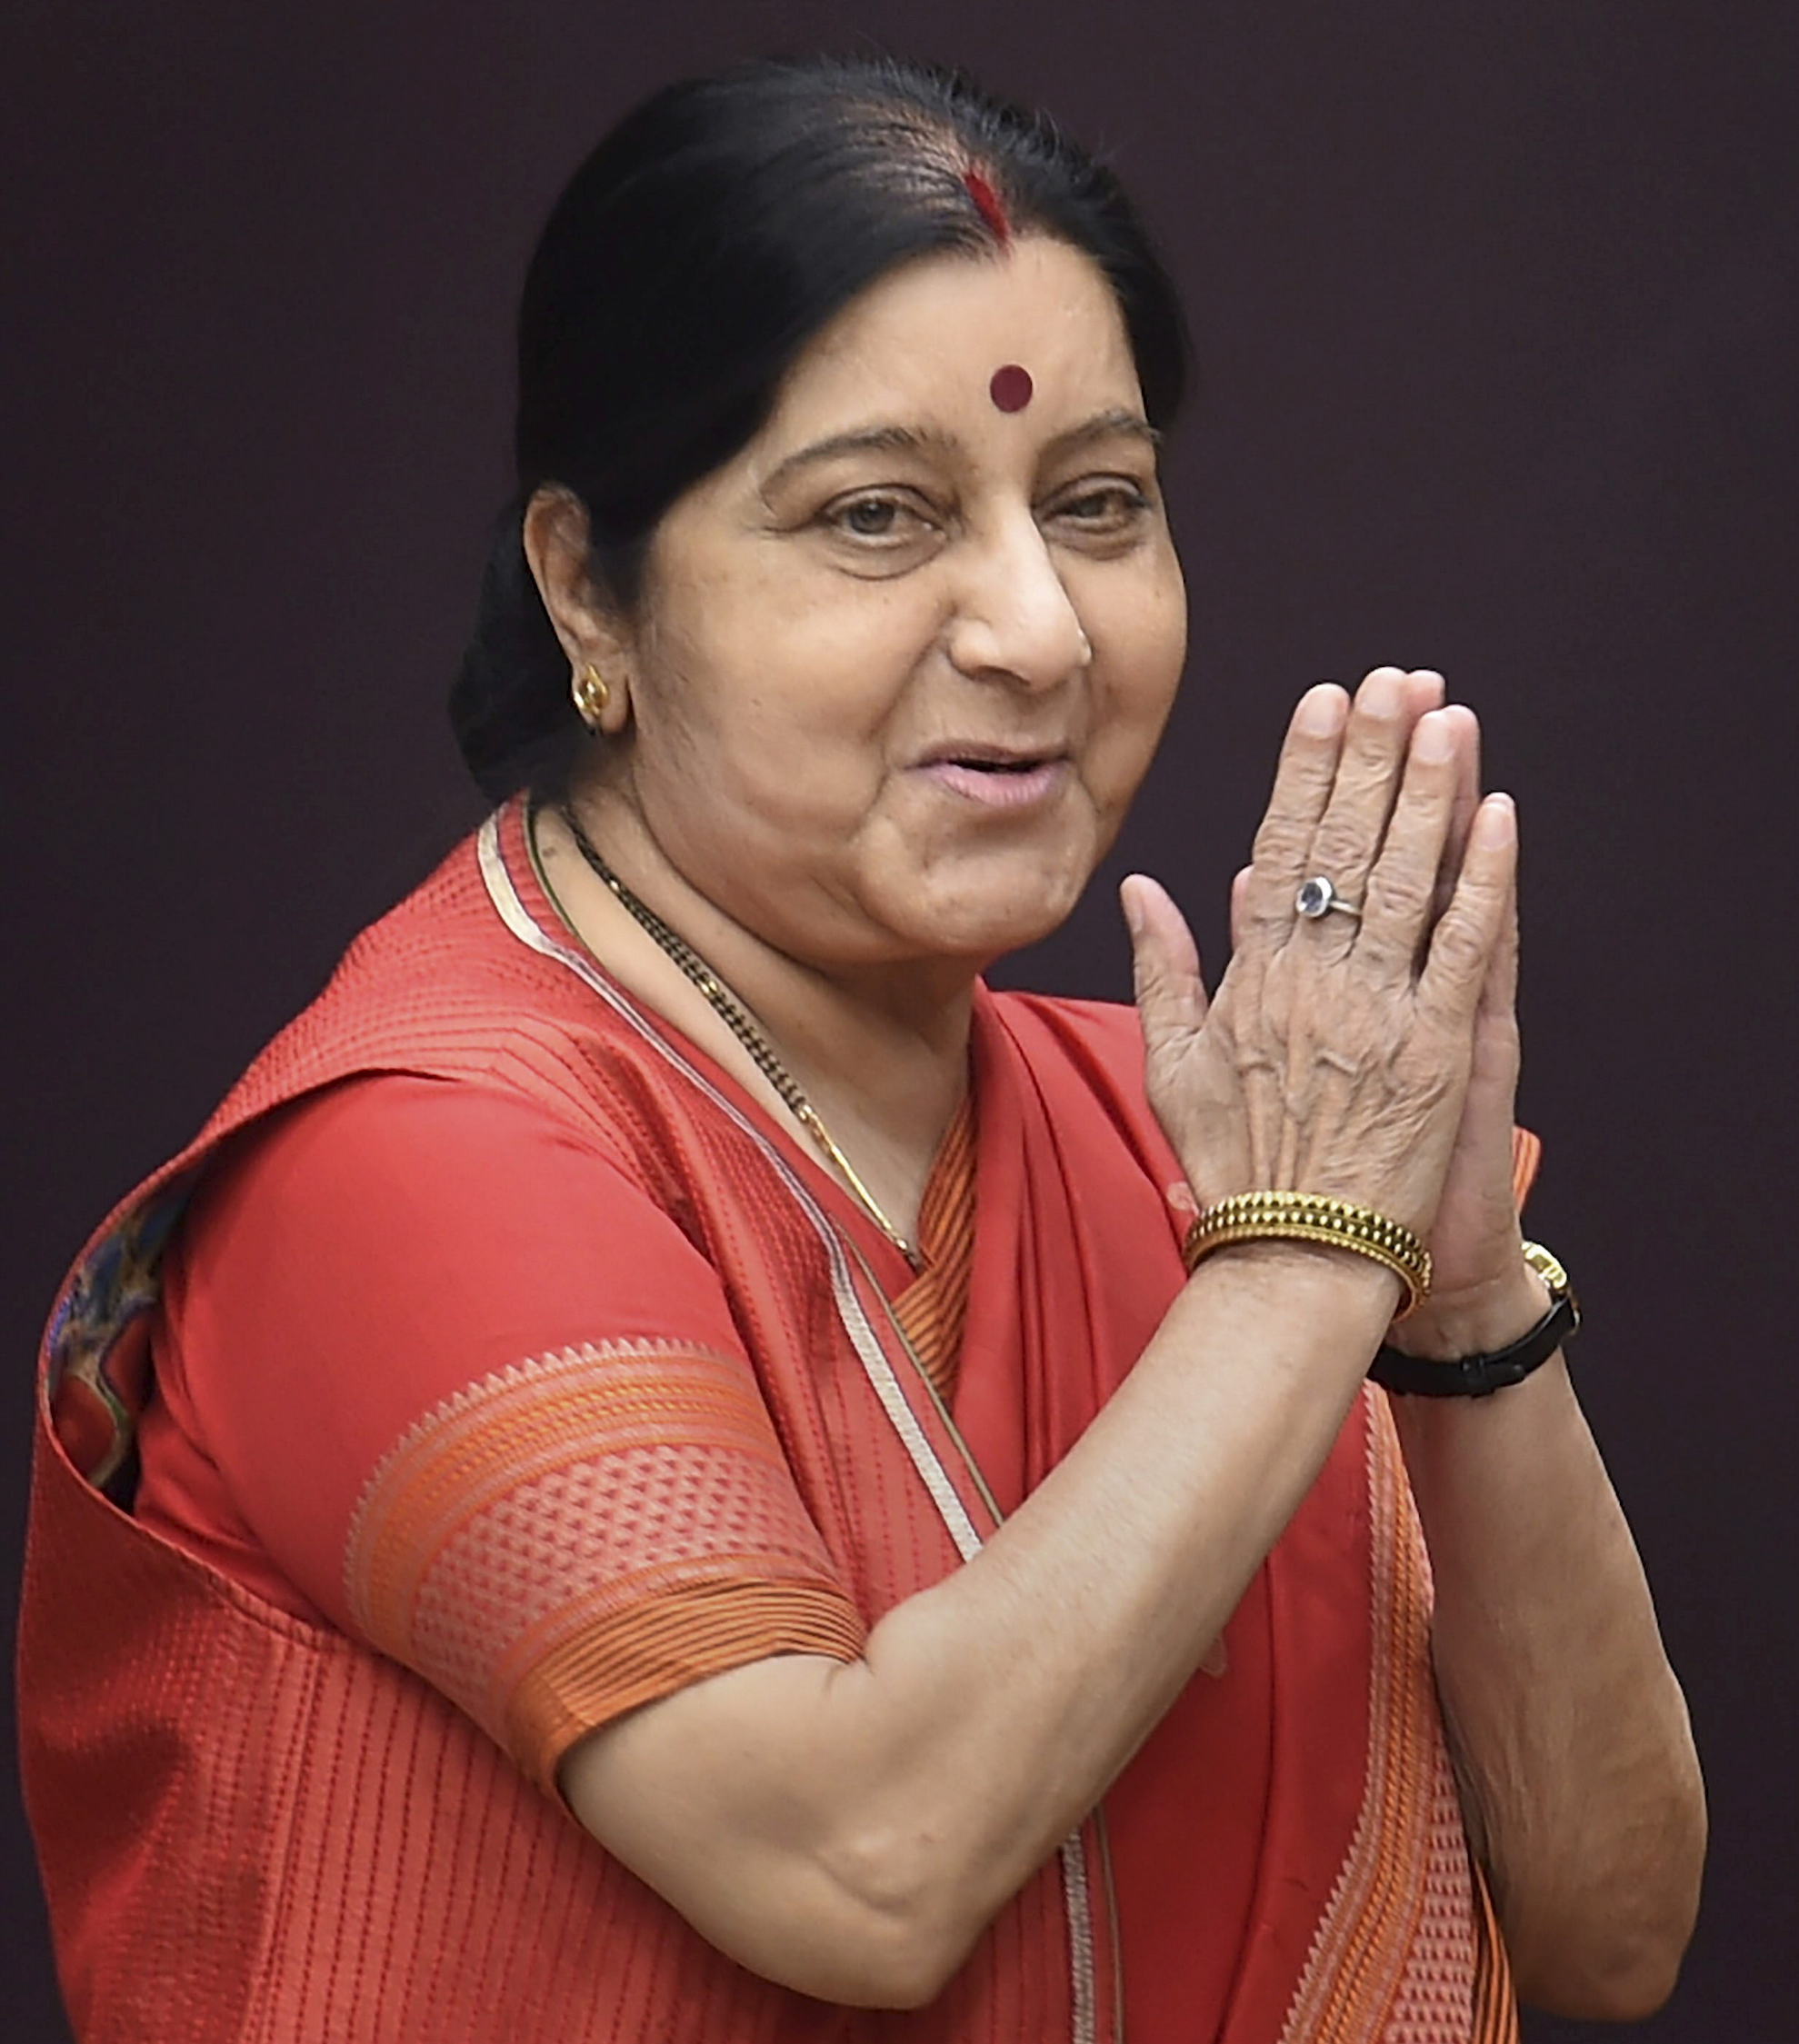 Sushma Swaraj passed away in New Delhi on Tuesday, August 6, 2019, after she became critically ill and had to be rushed to the All India Institute of Medical Sciences